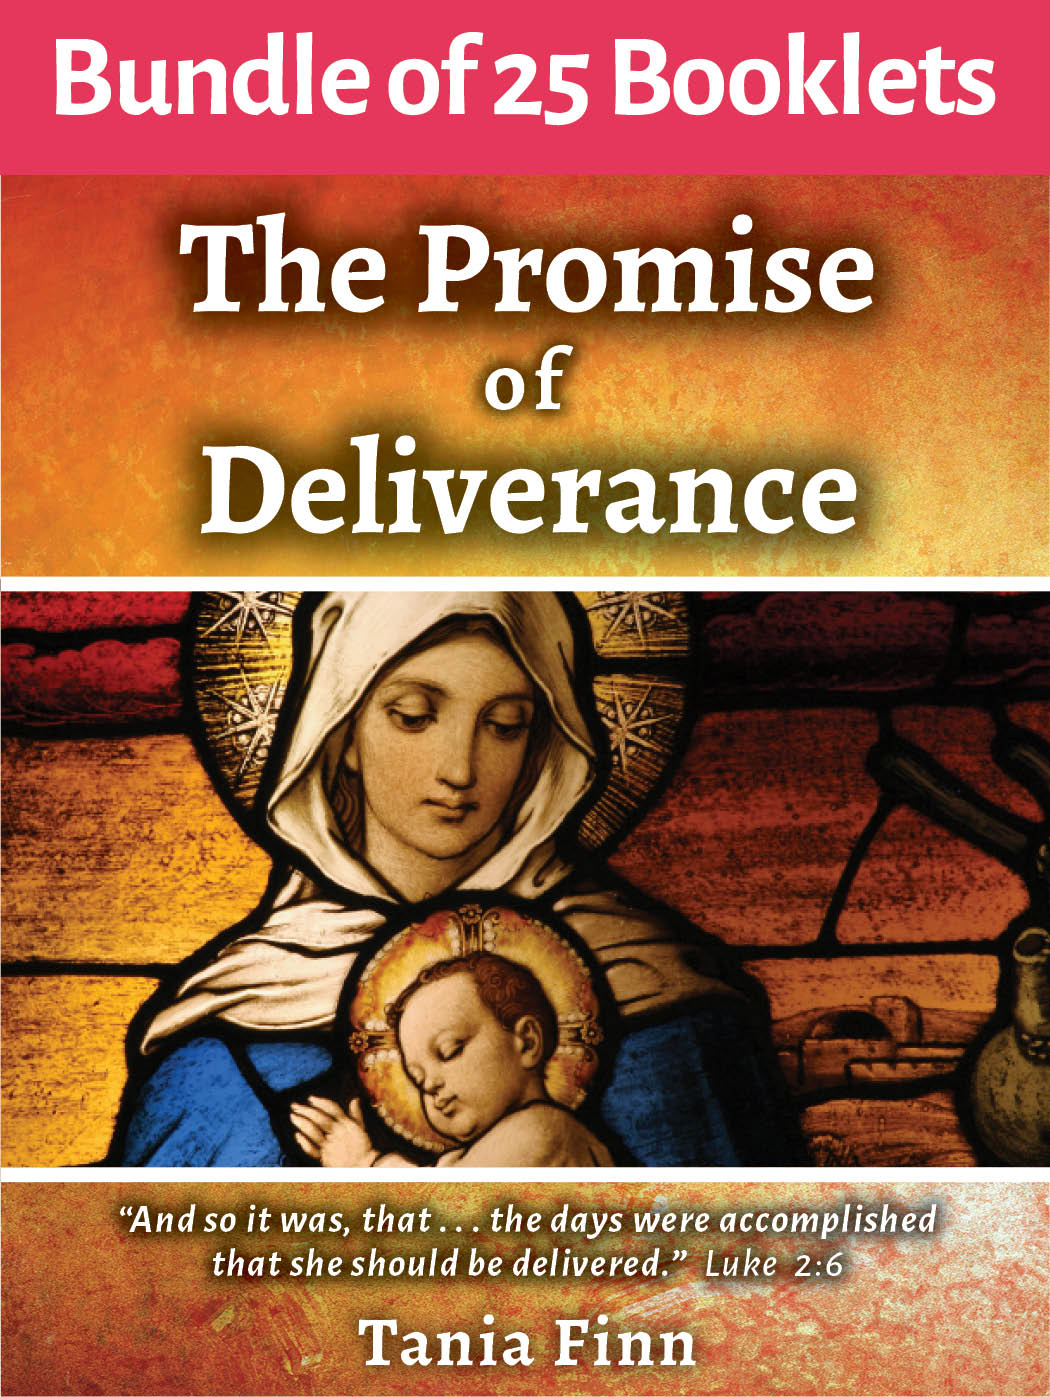 Bundle of 25 – The Promise of Deliverance – Physical Booklet (2020)